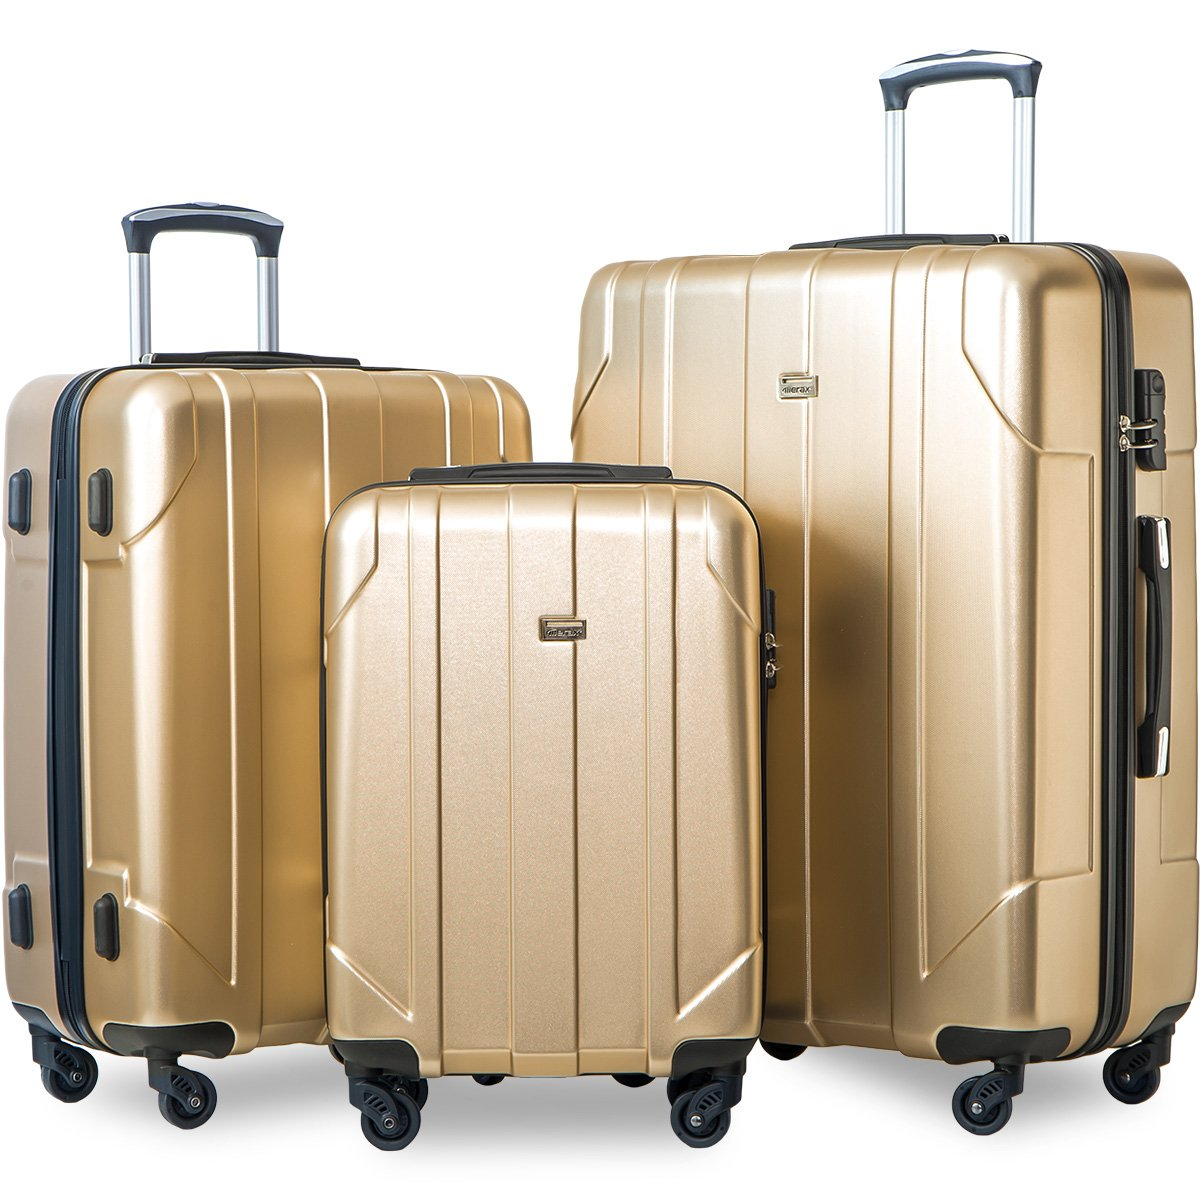 6cc4a2066438 Merax 3 Piece P.E.T Luggage Set Eco-friendly Light Weight Travel Suitcase  (Champagne)